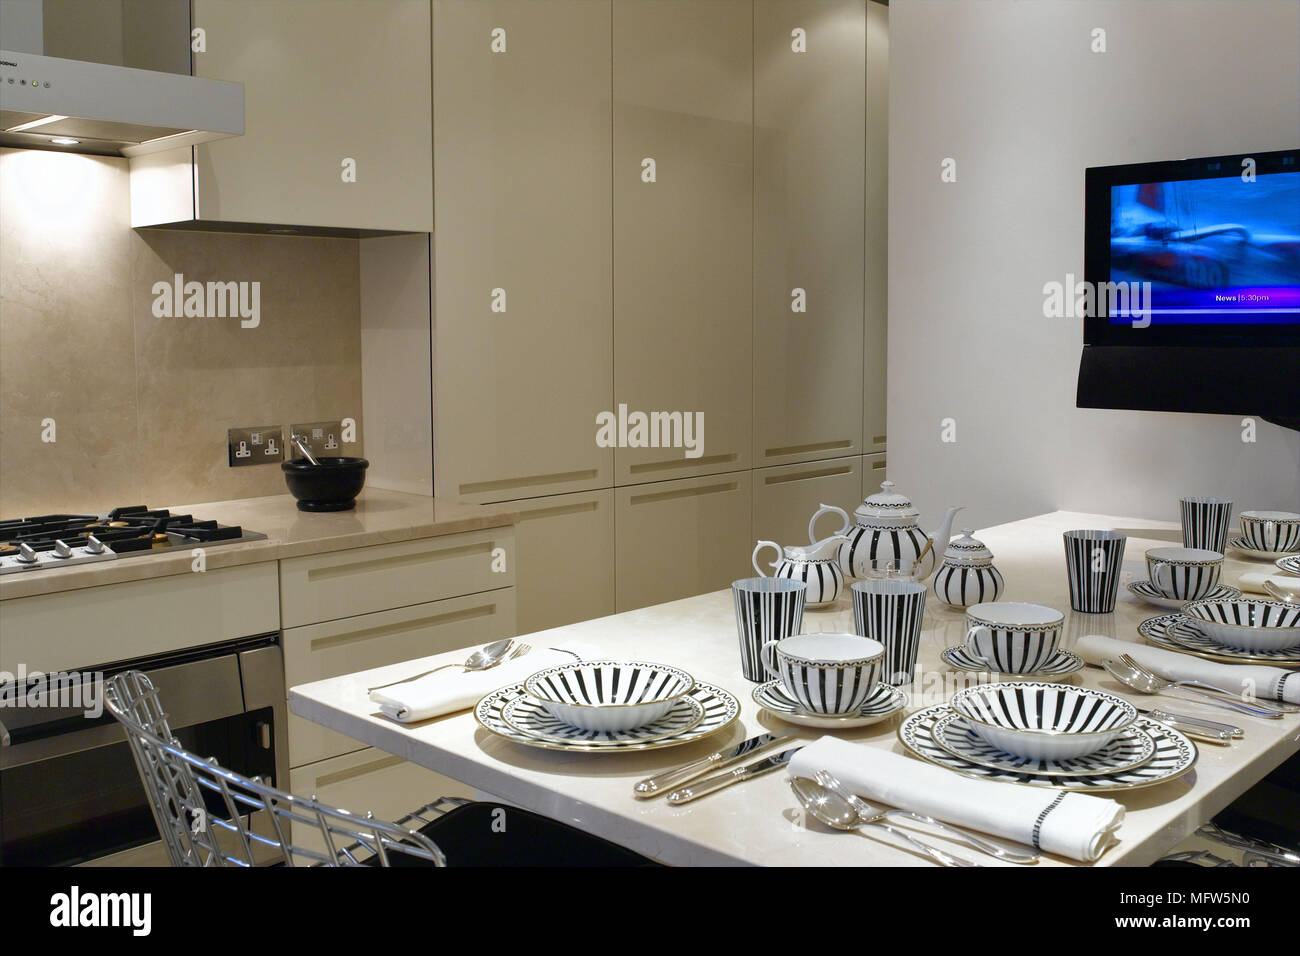 A Modern Kitchen With Beige Kitchen Units Facing A Kitchen Table